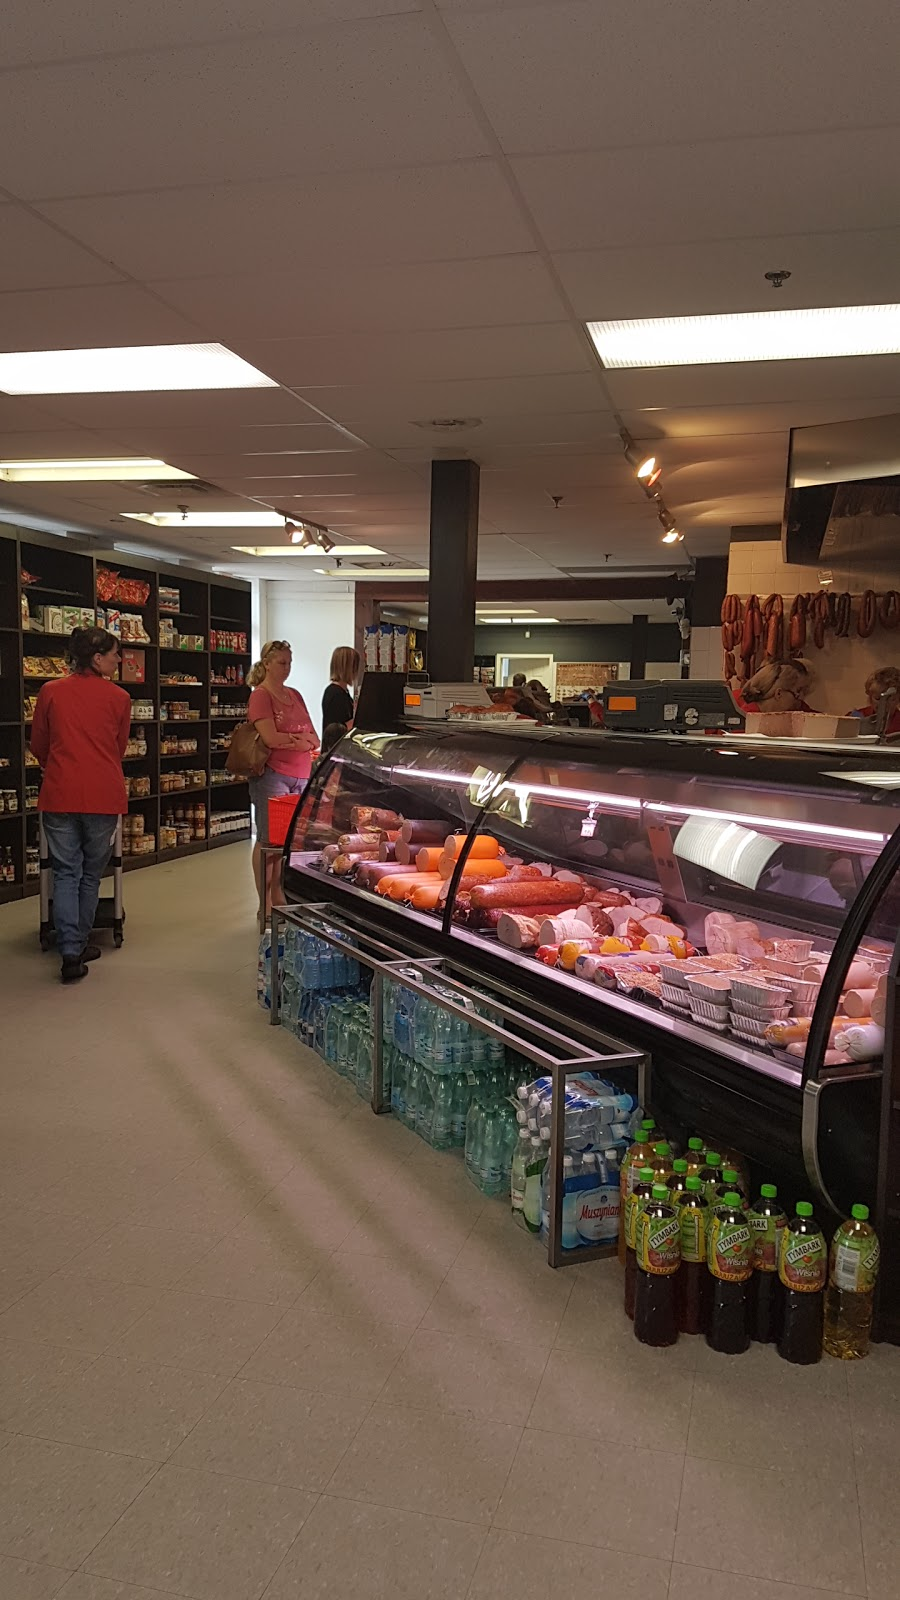 Odra Deli & Wholesale Meat Ltd | store | 2395 Cawthra Rd, Mississauga, ON L5A 2W8, Canada | 9058963666 OR +1 905-896-3666